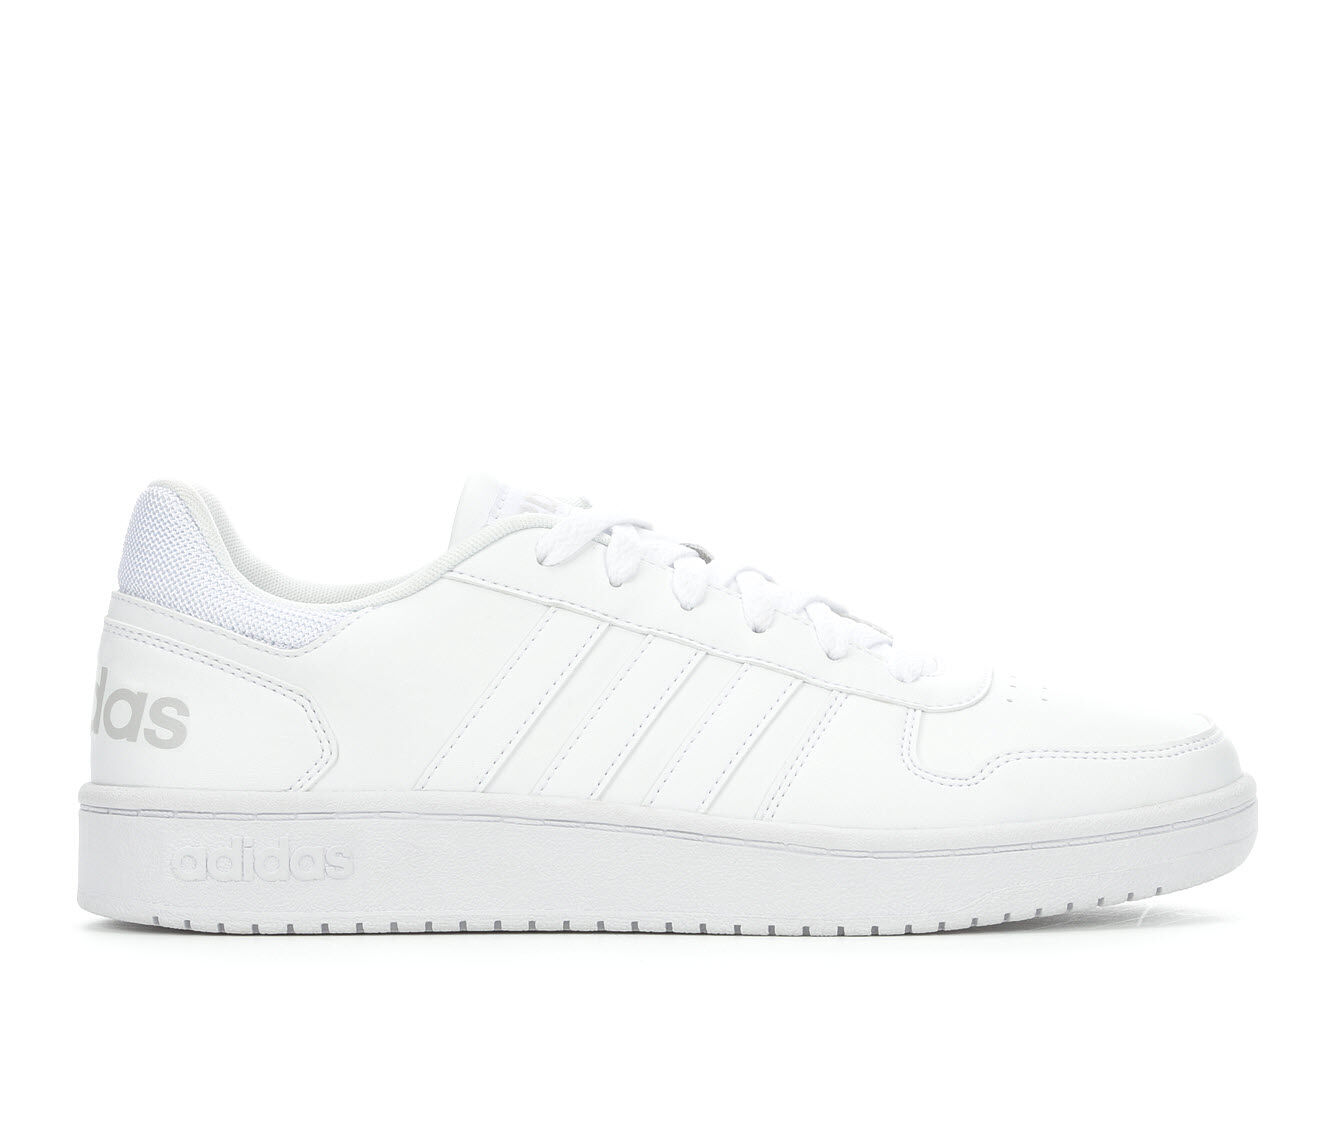 Men's Adidas Hoops 2.0 Low Retro Sneakers Wht/Wht/Gry